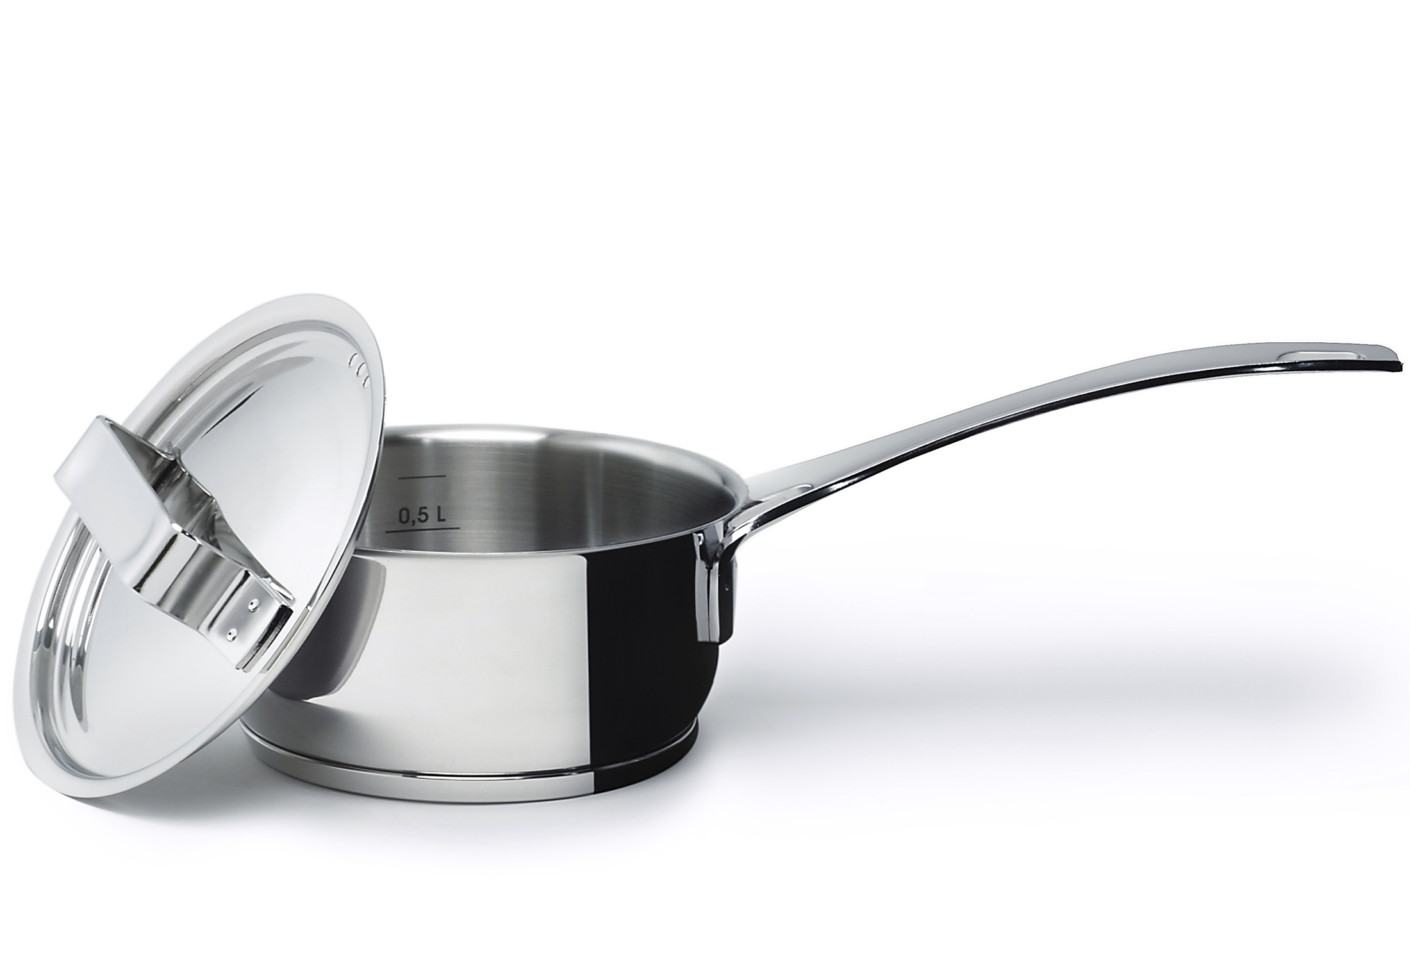 All Steel Small Saucepan By Iittala Stylepark